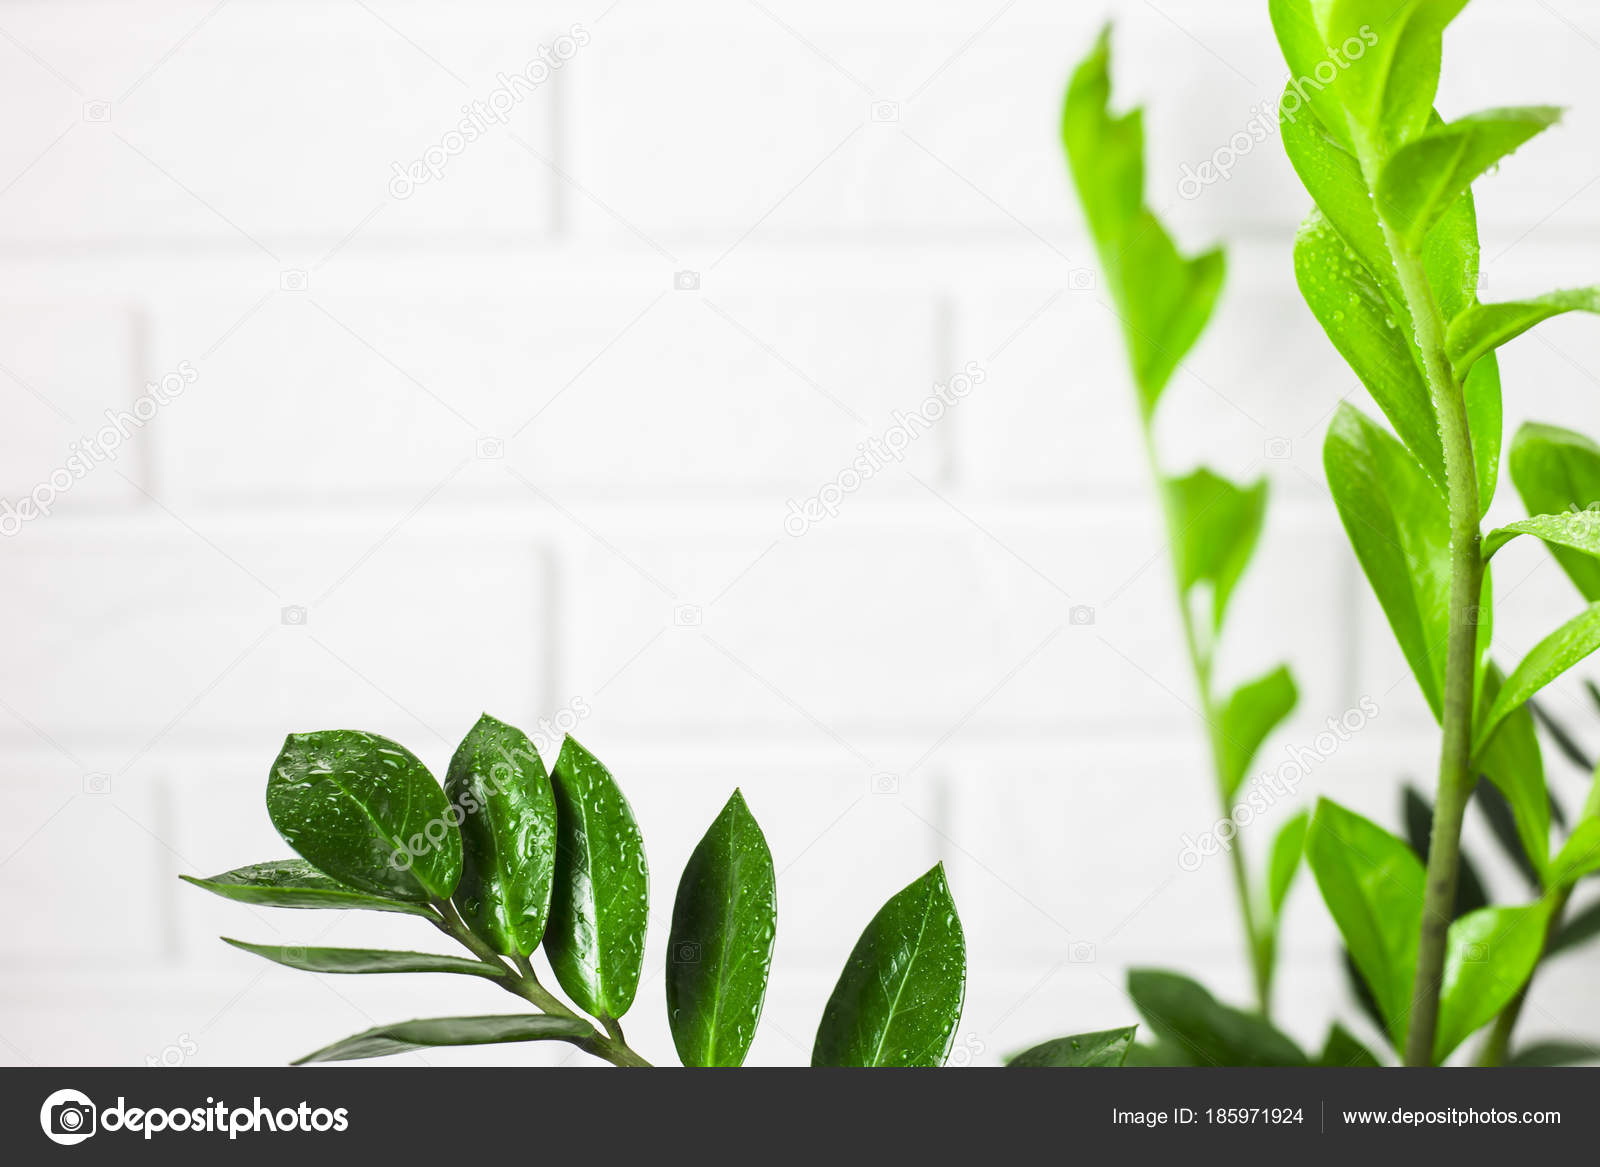 Zamiokulkas Houseplant Bright Green Leaves White Brick Wall ... on white and green leaves weed, epipremnum pothos house plant, potted white azalea plant, serene peace plant, white calla lily plants,